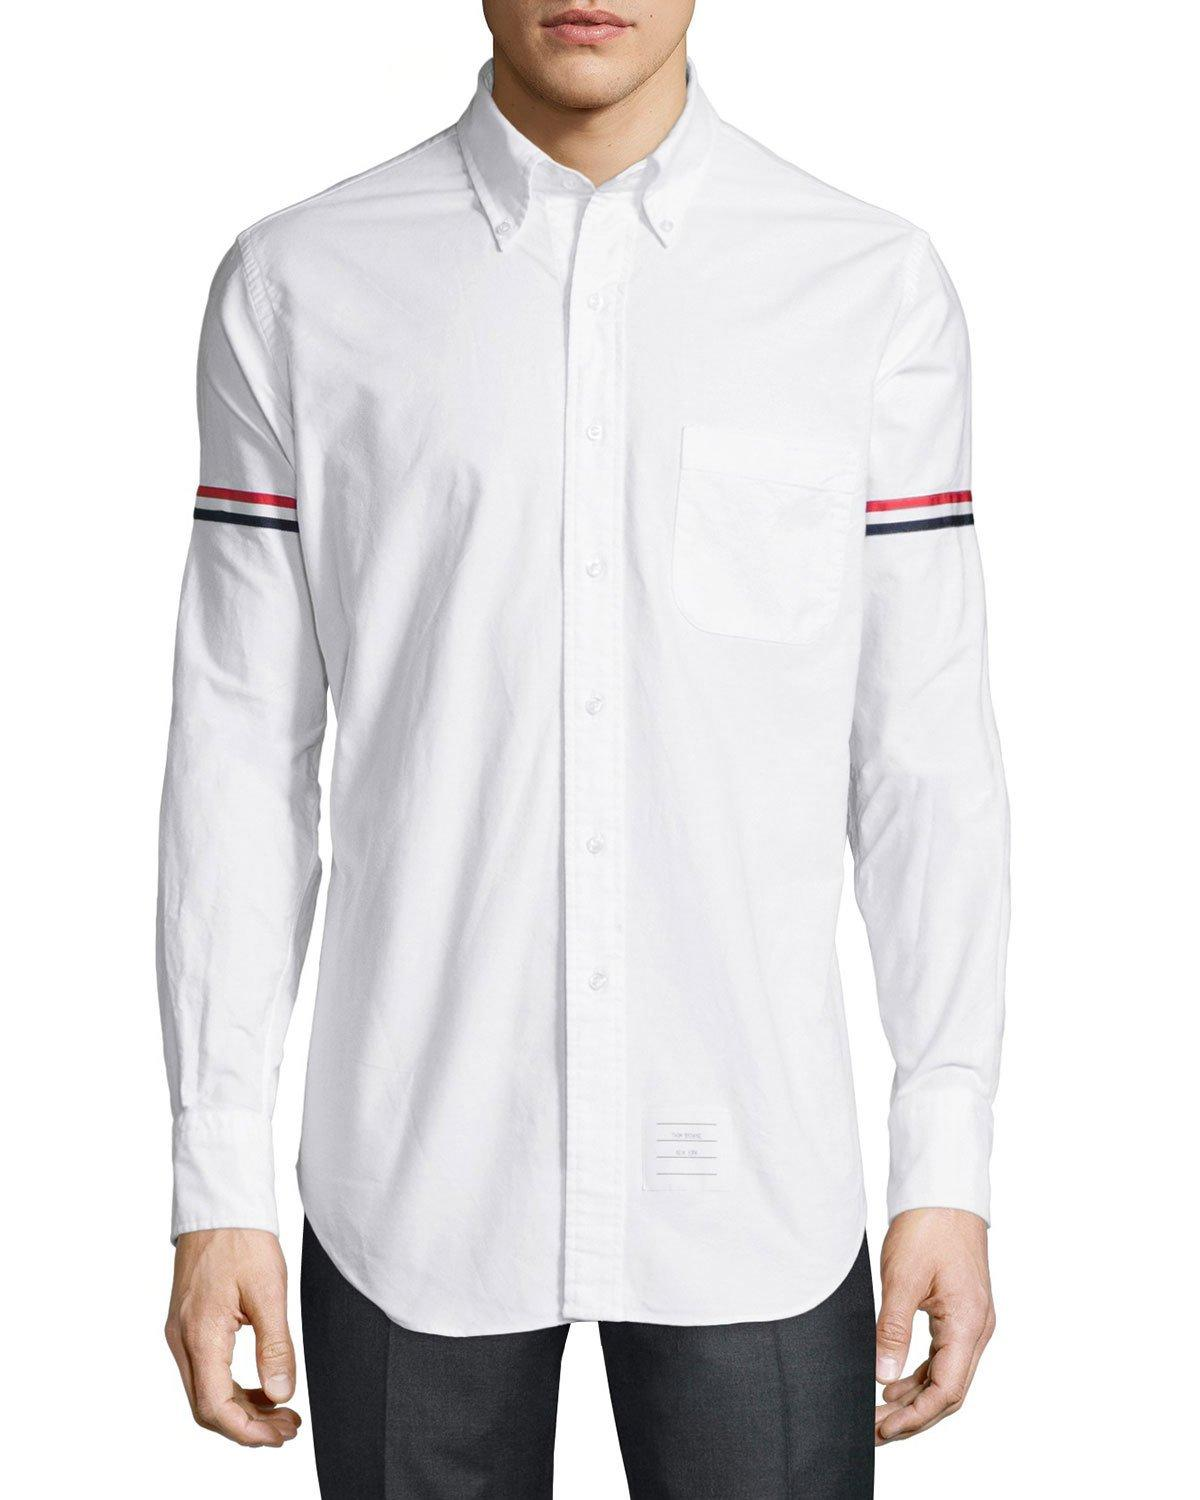 Thom Browne Classic Arm Stripe Long Sleeve Oxford Shirt In